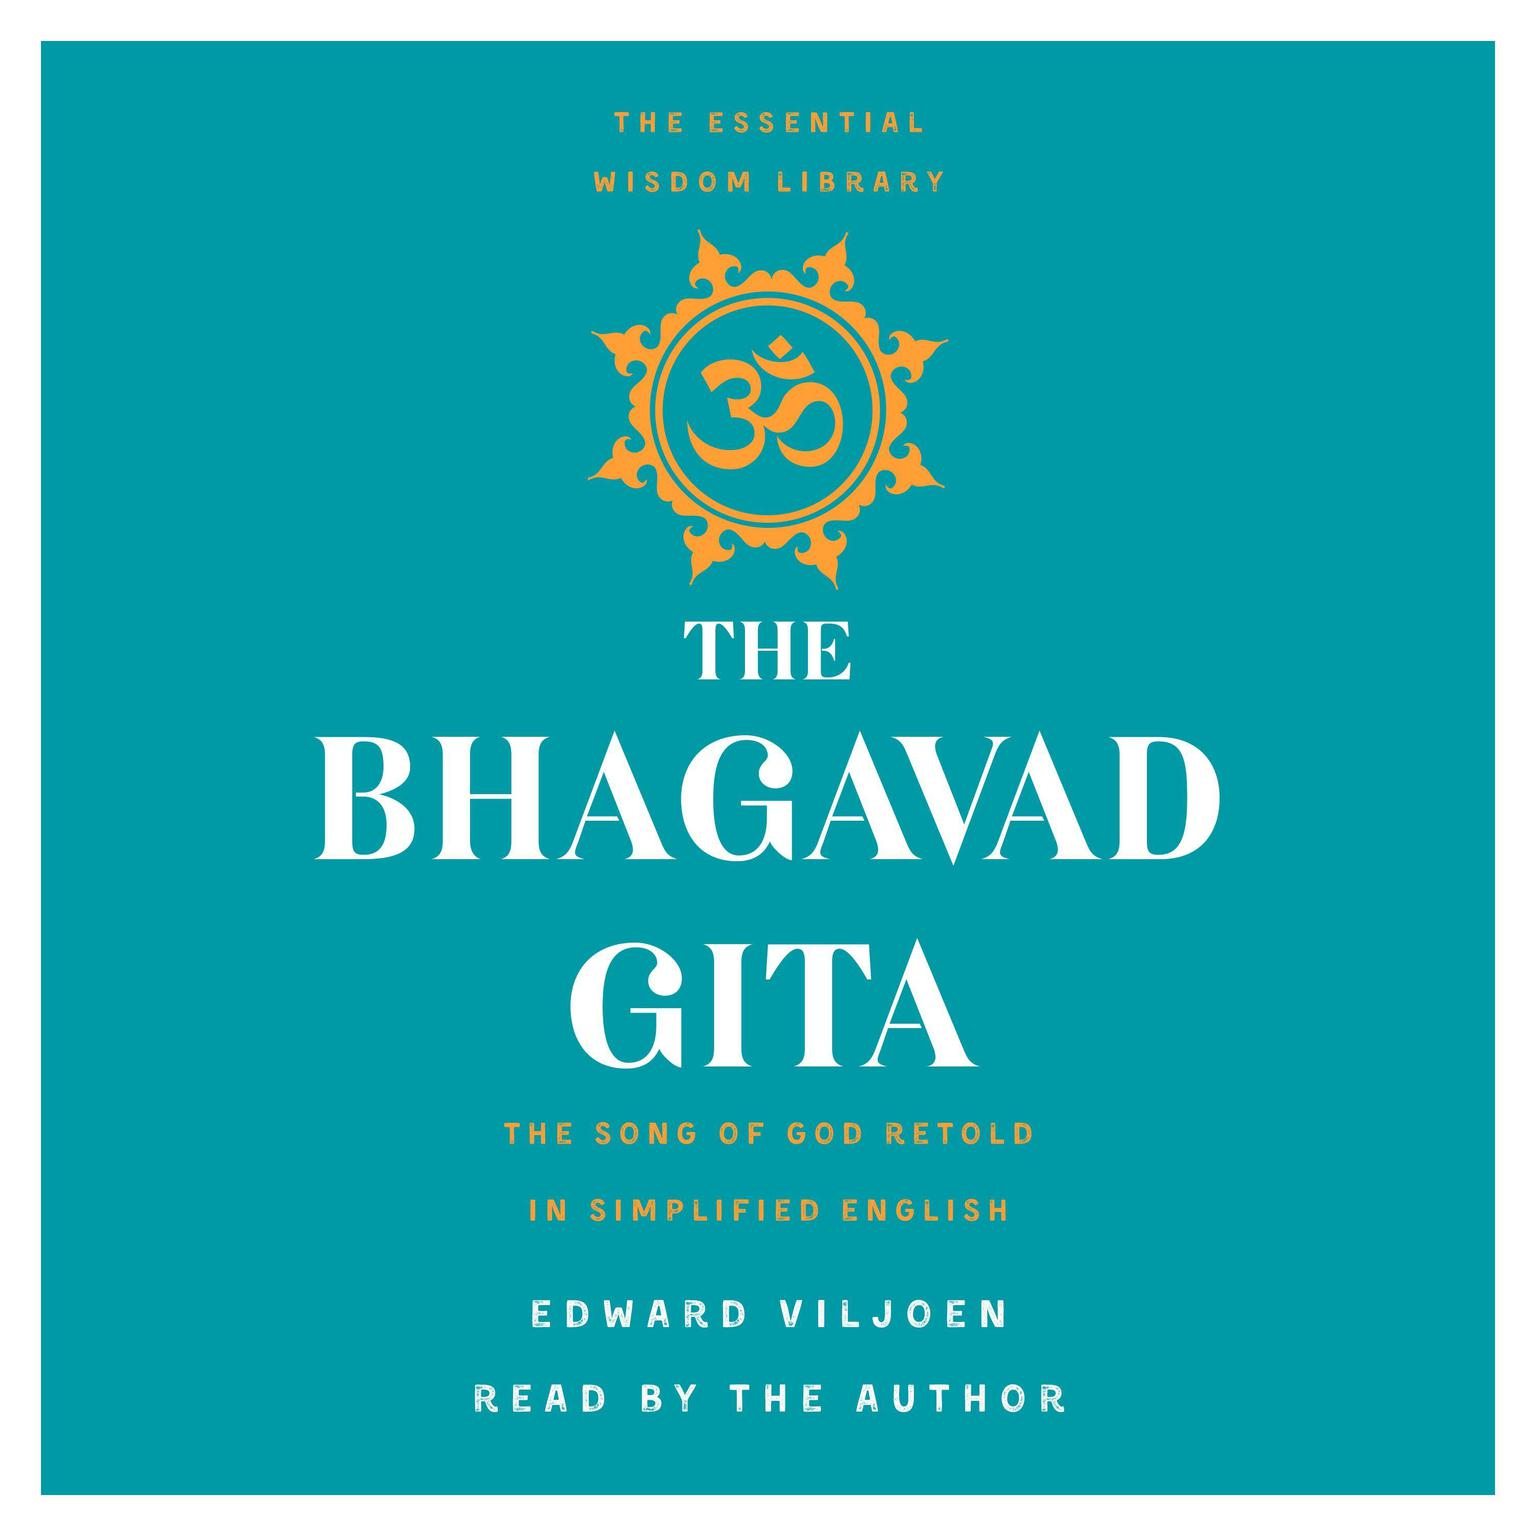 Printable The Bhagavad Gita: The Song of God Retold in Simplified English (The Essential Wisdom Library) Audiobook Cover Art